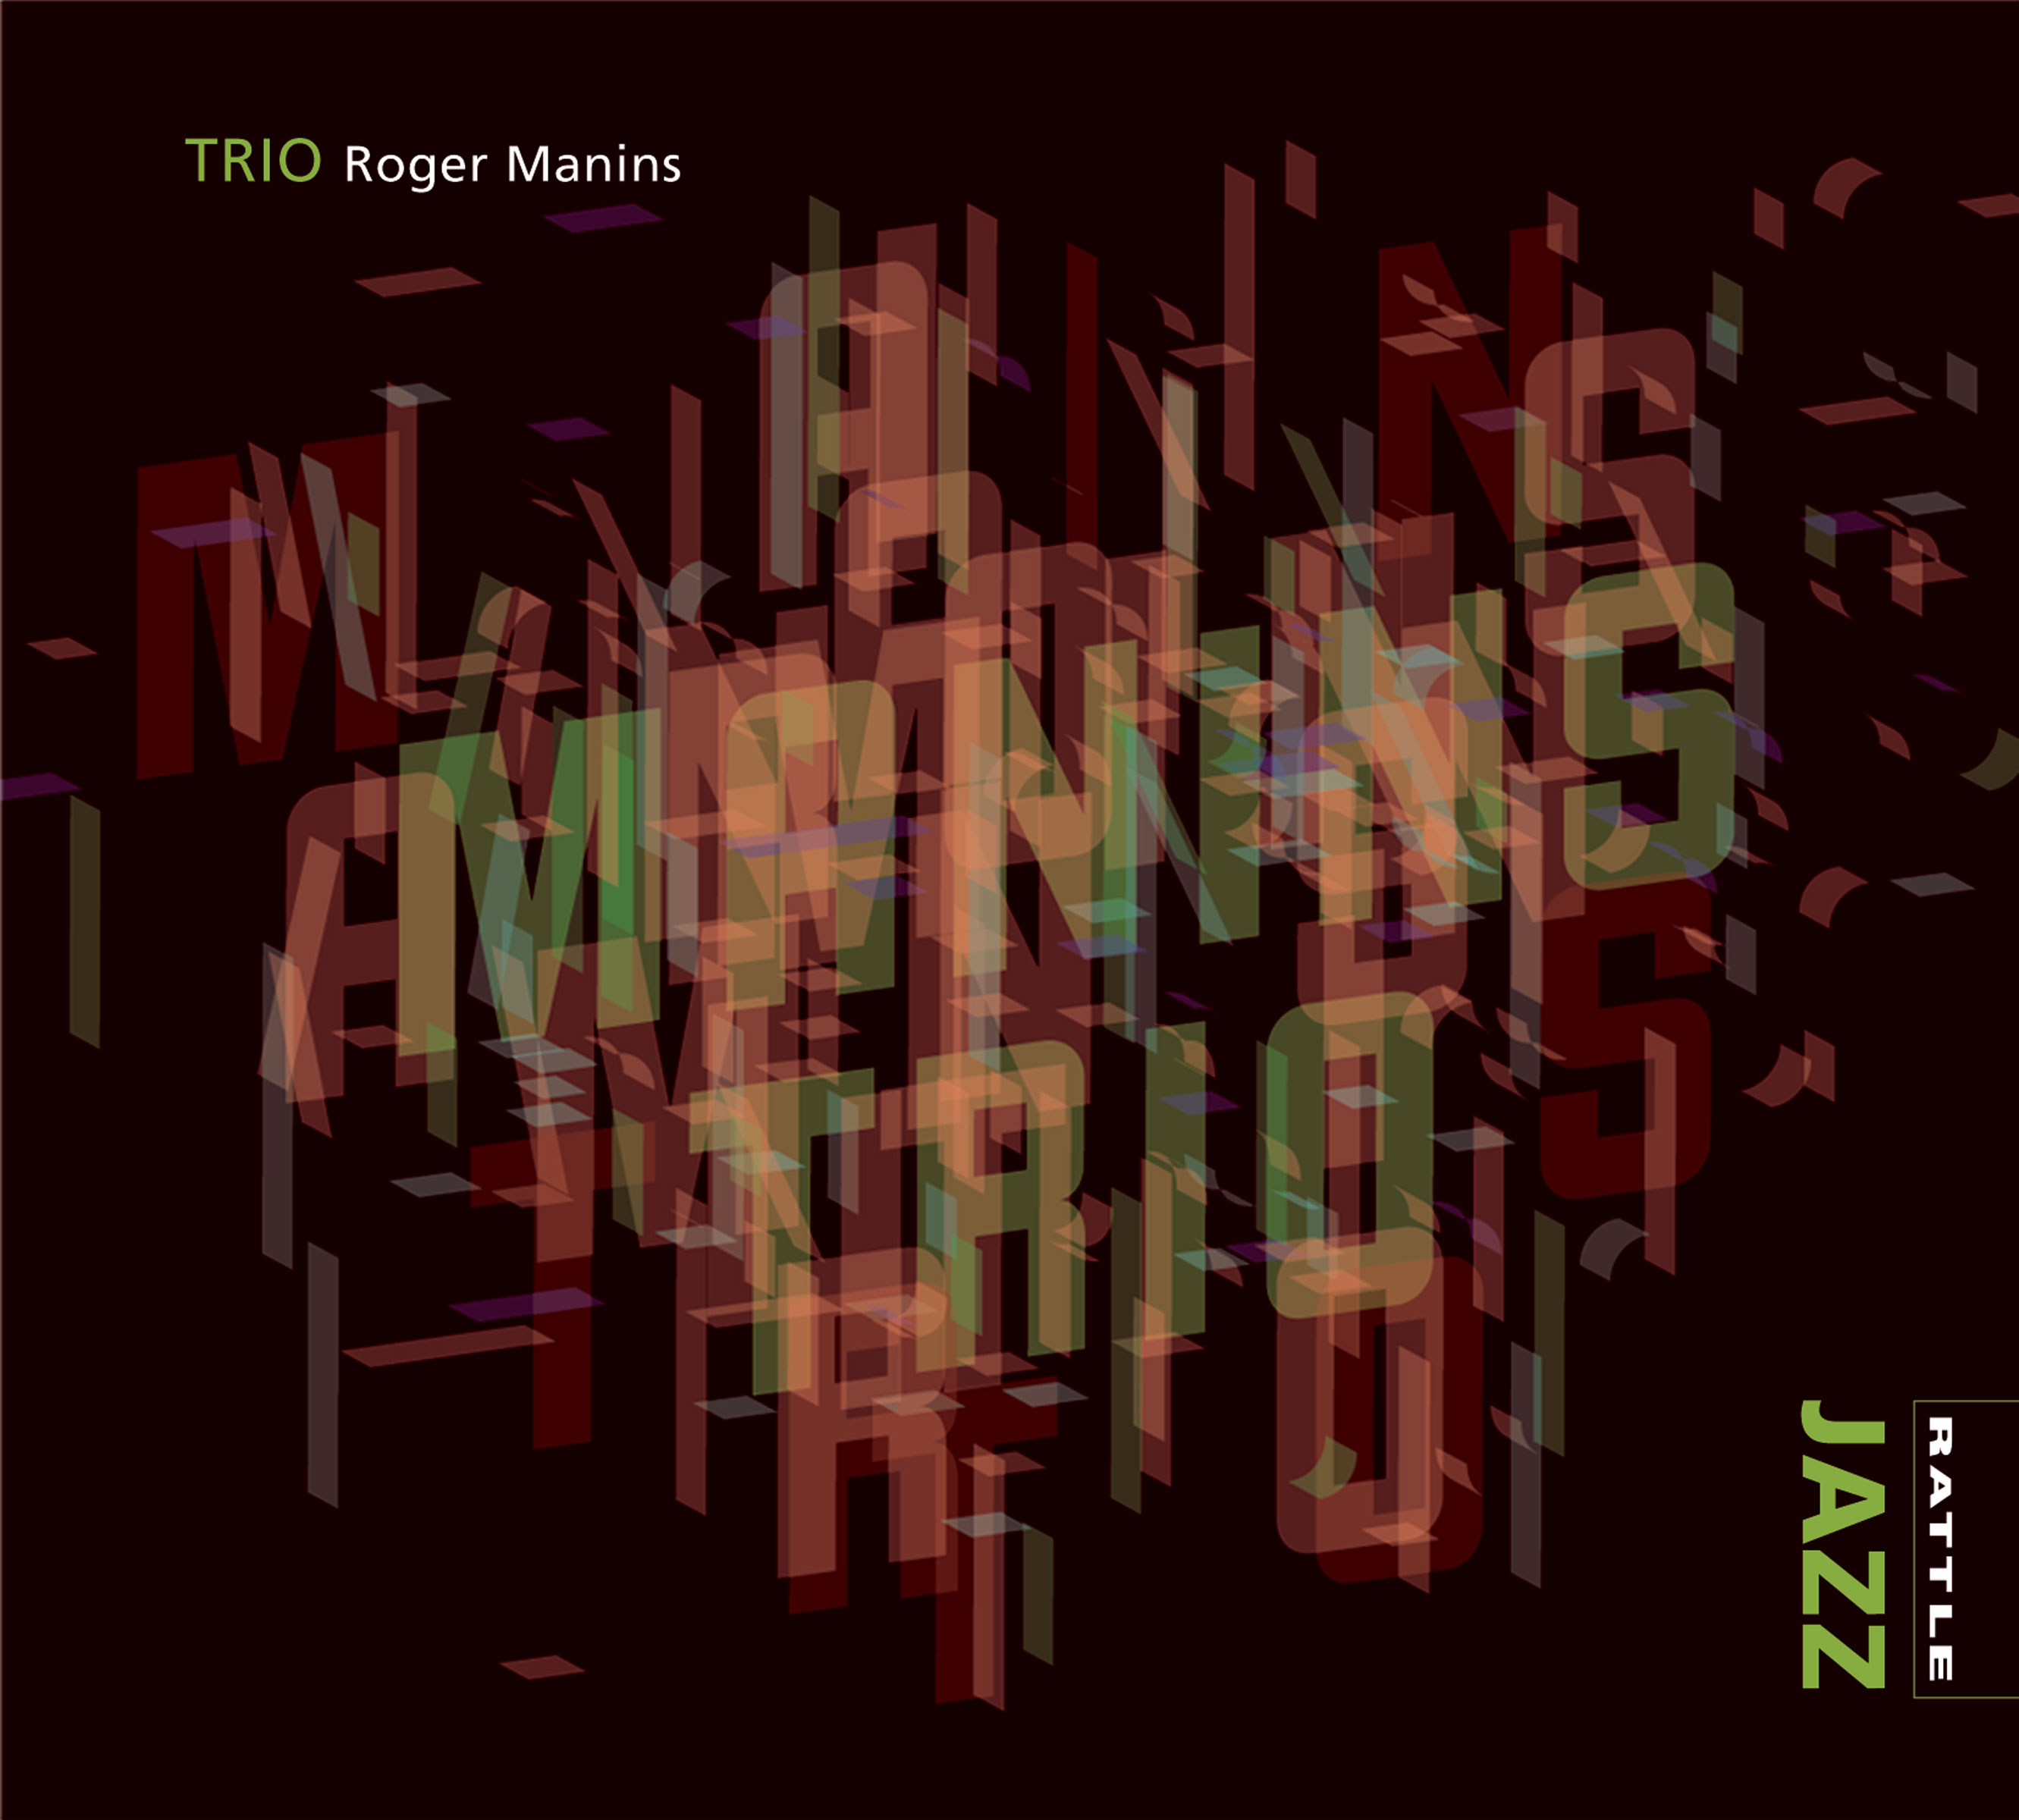 Roger Manins | Trio - downloadable MP3 ALBUM